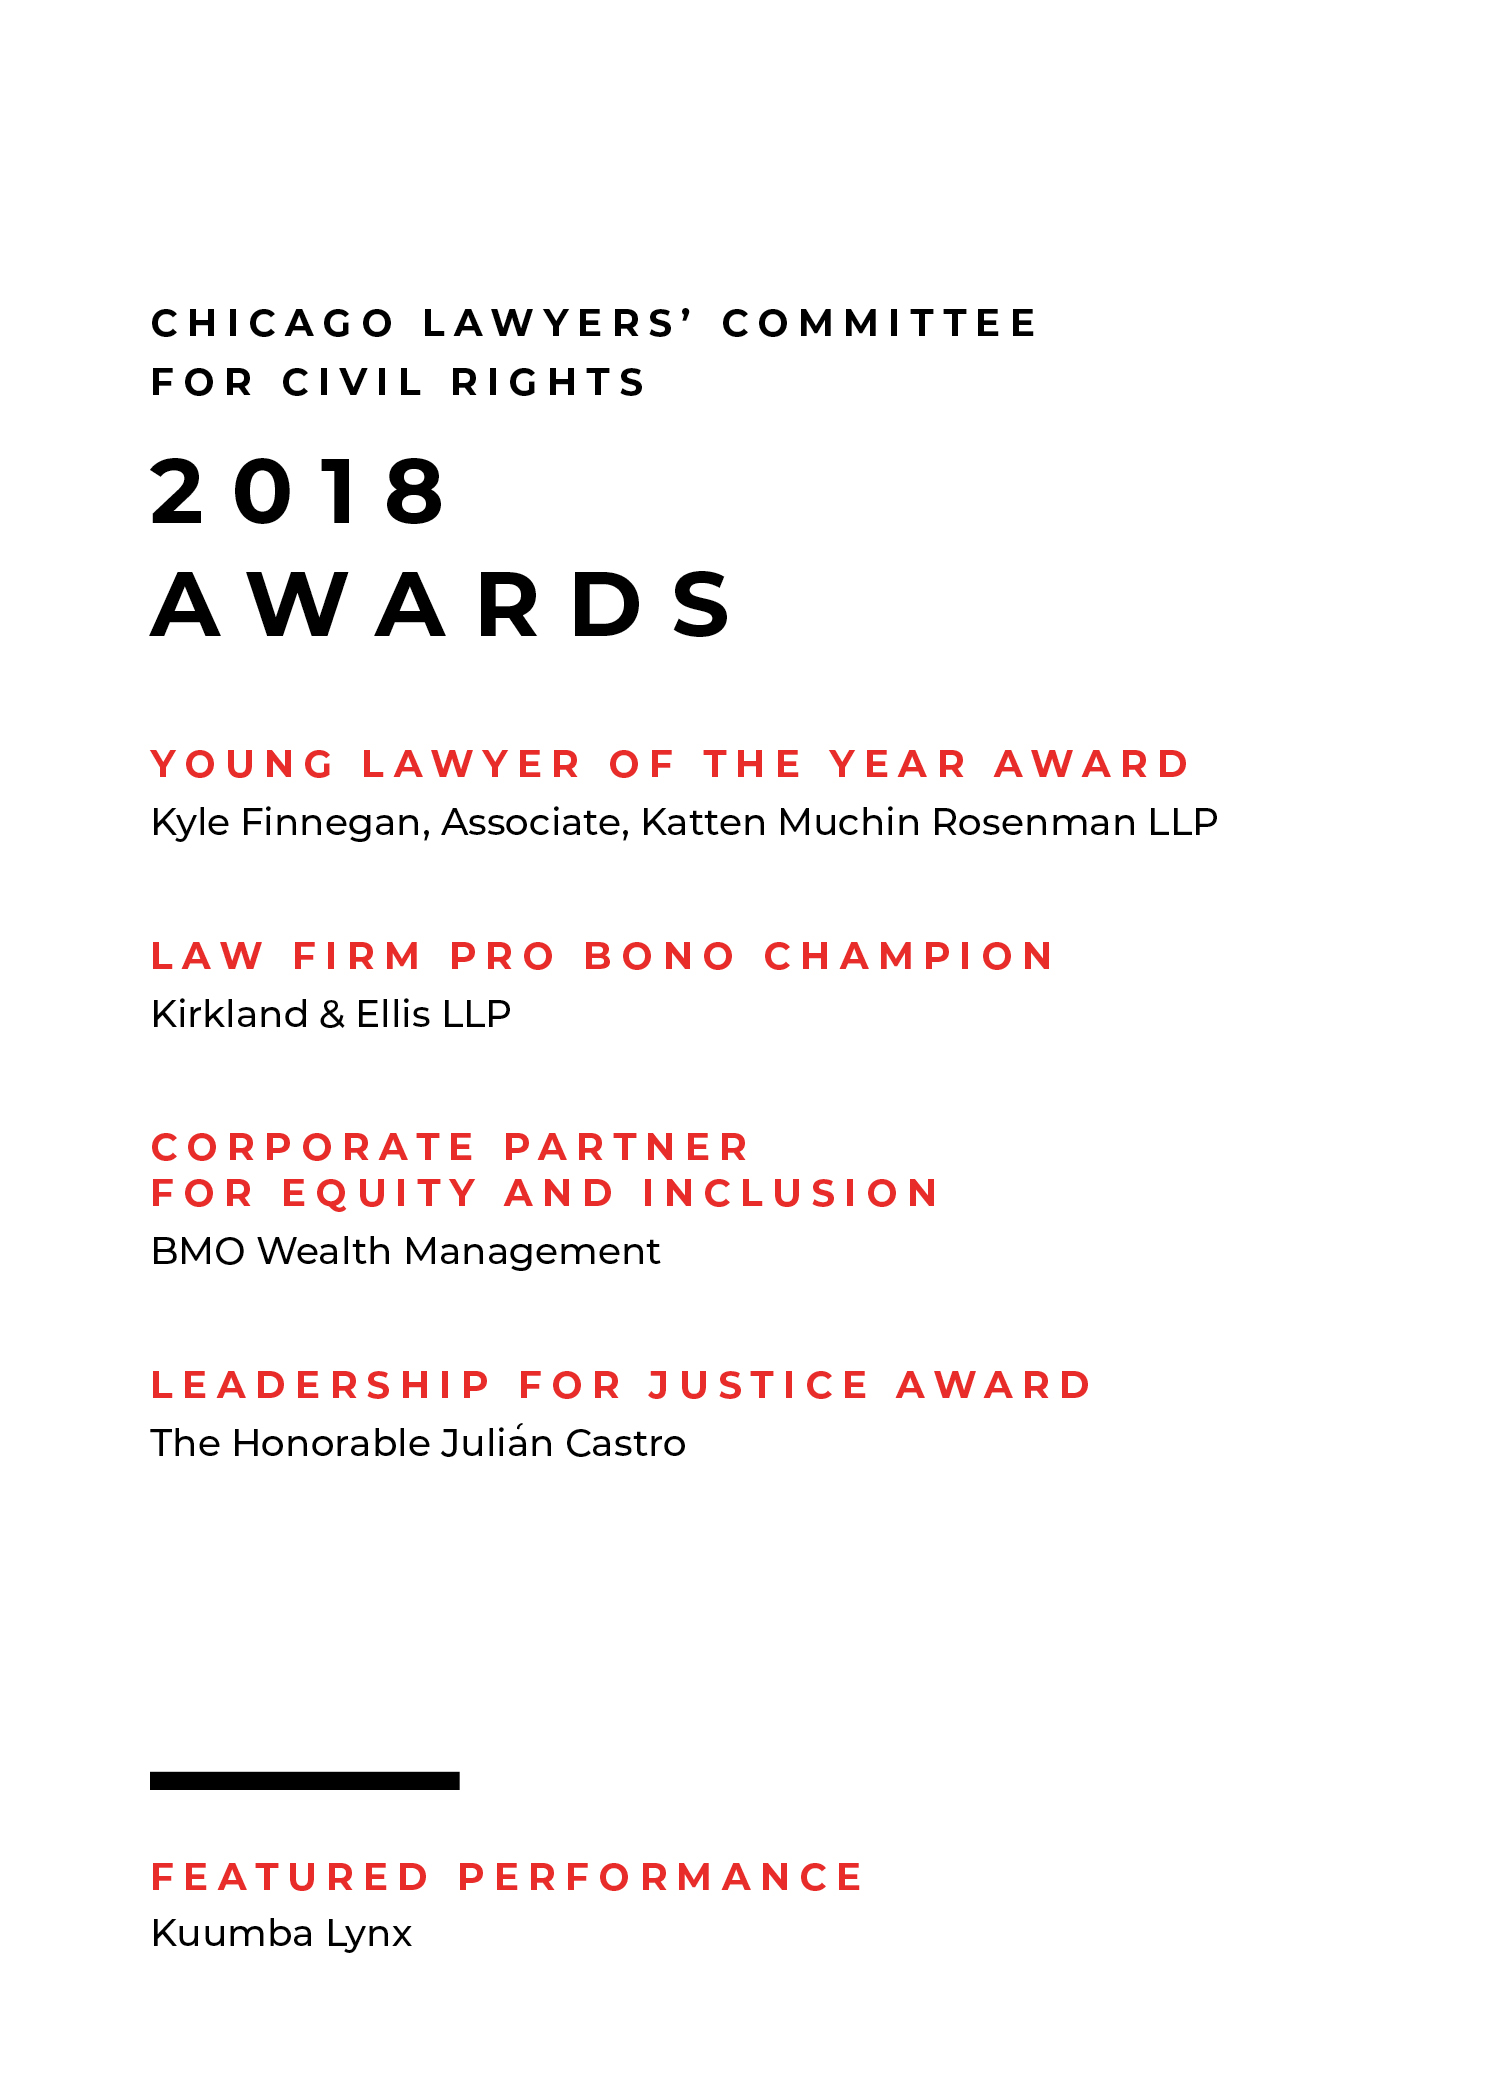 CLC2018_invitation_awards_v2.jpg